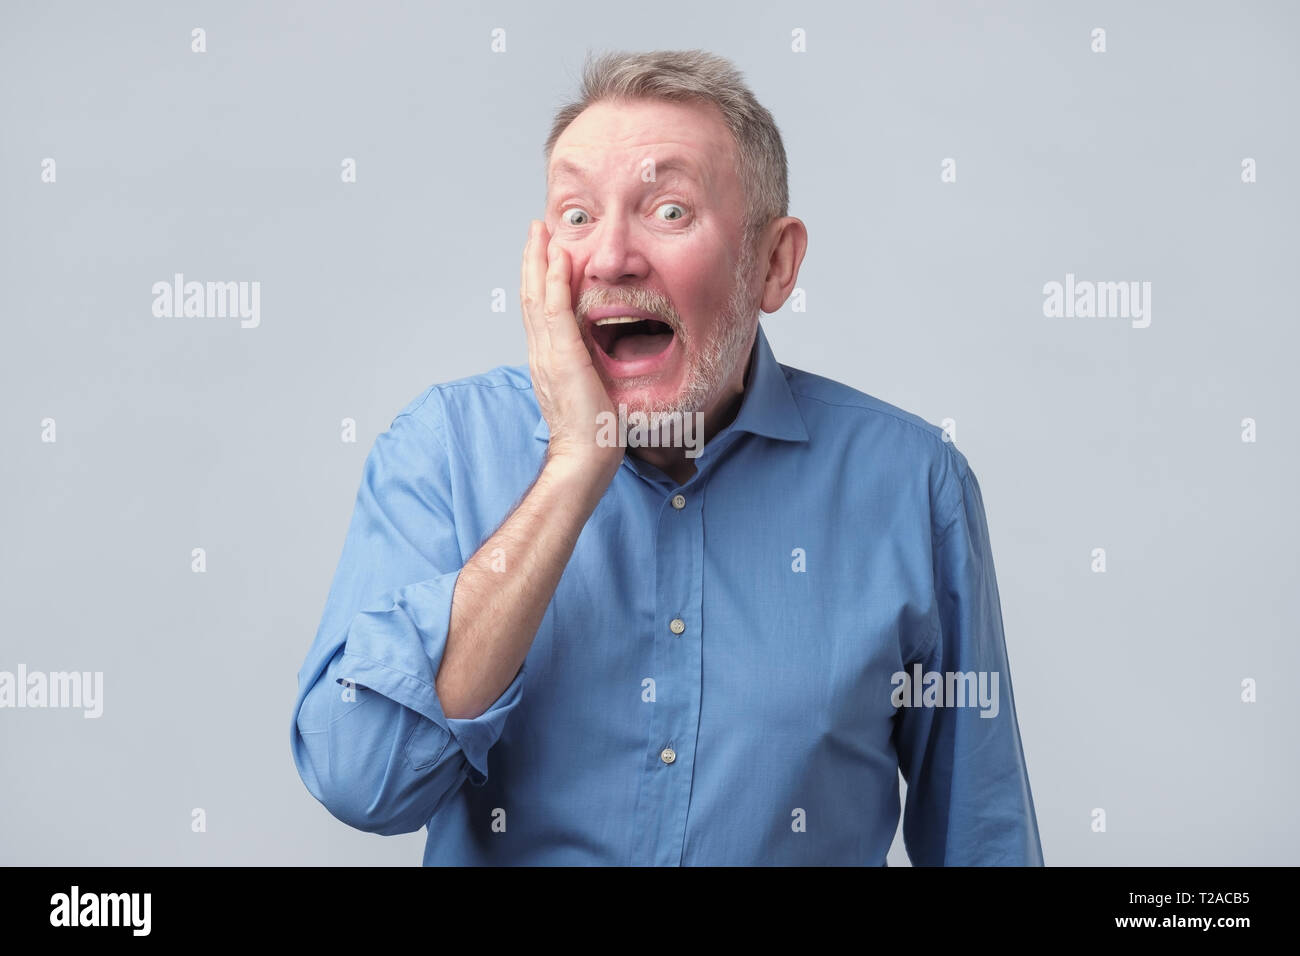 Amazed senior man in blue shirt keeping mouth wide open, put hands on cheeks. People sincere emotions. Studio shoot - Stock Image